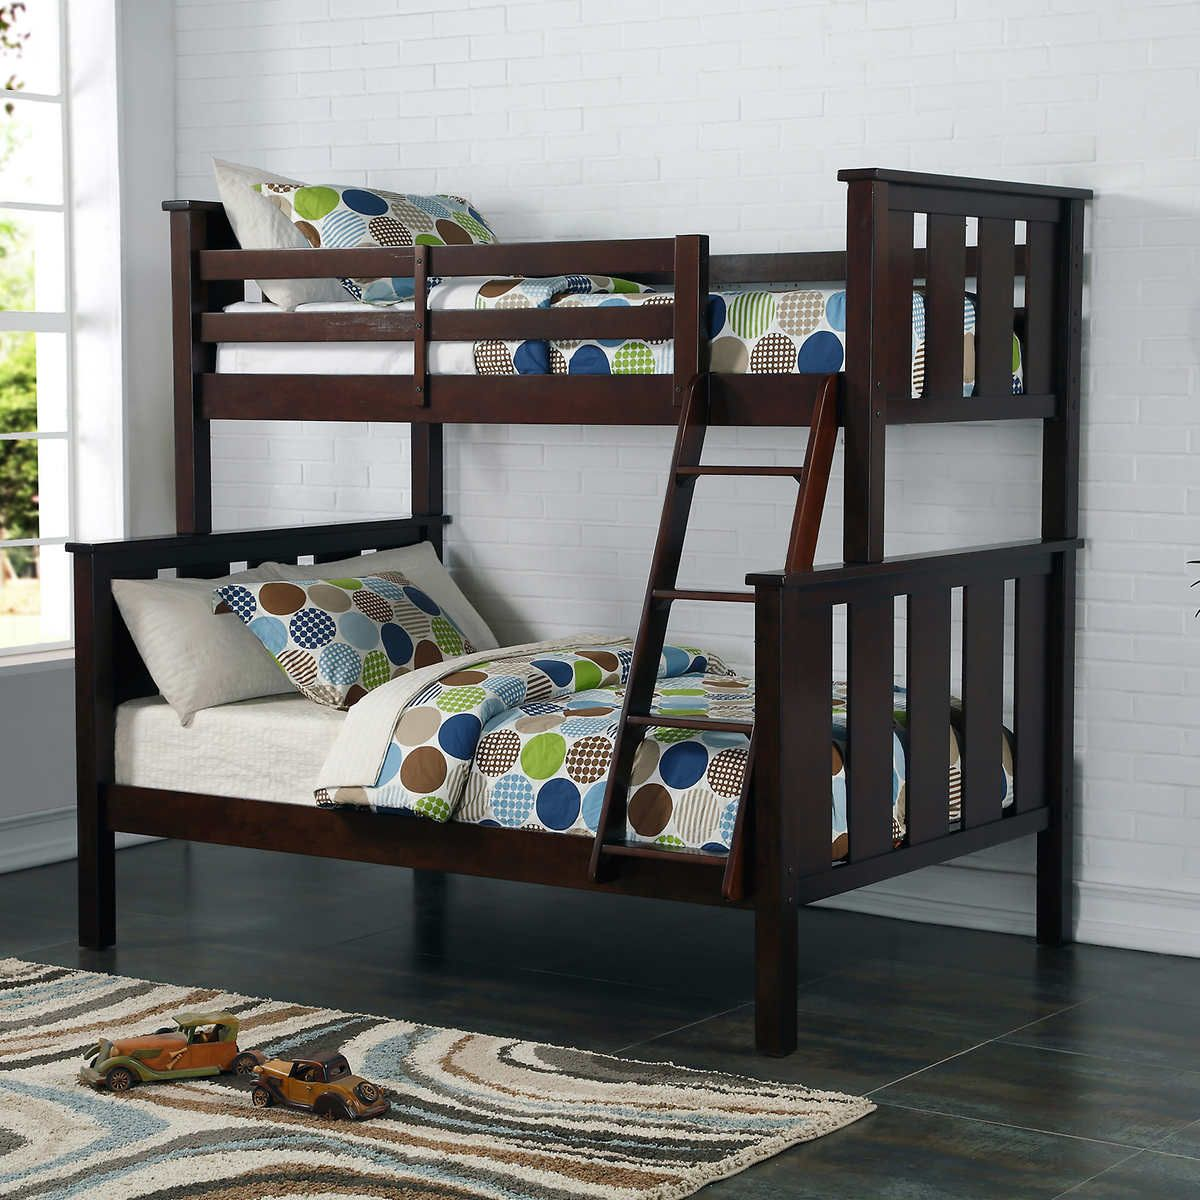 77 Seneca Twin Over Full Bunk Bed Interior Bedroom Design